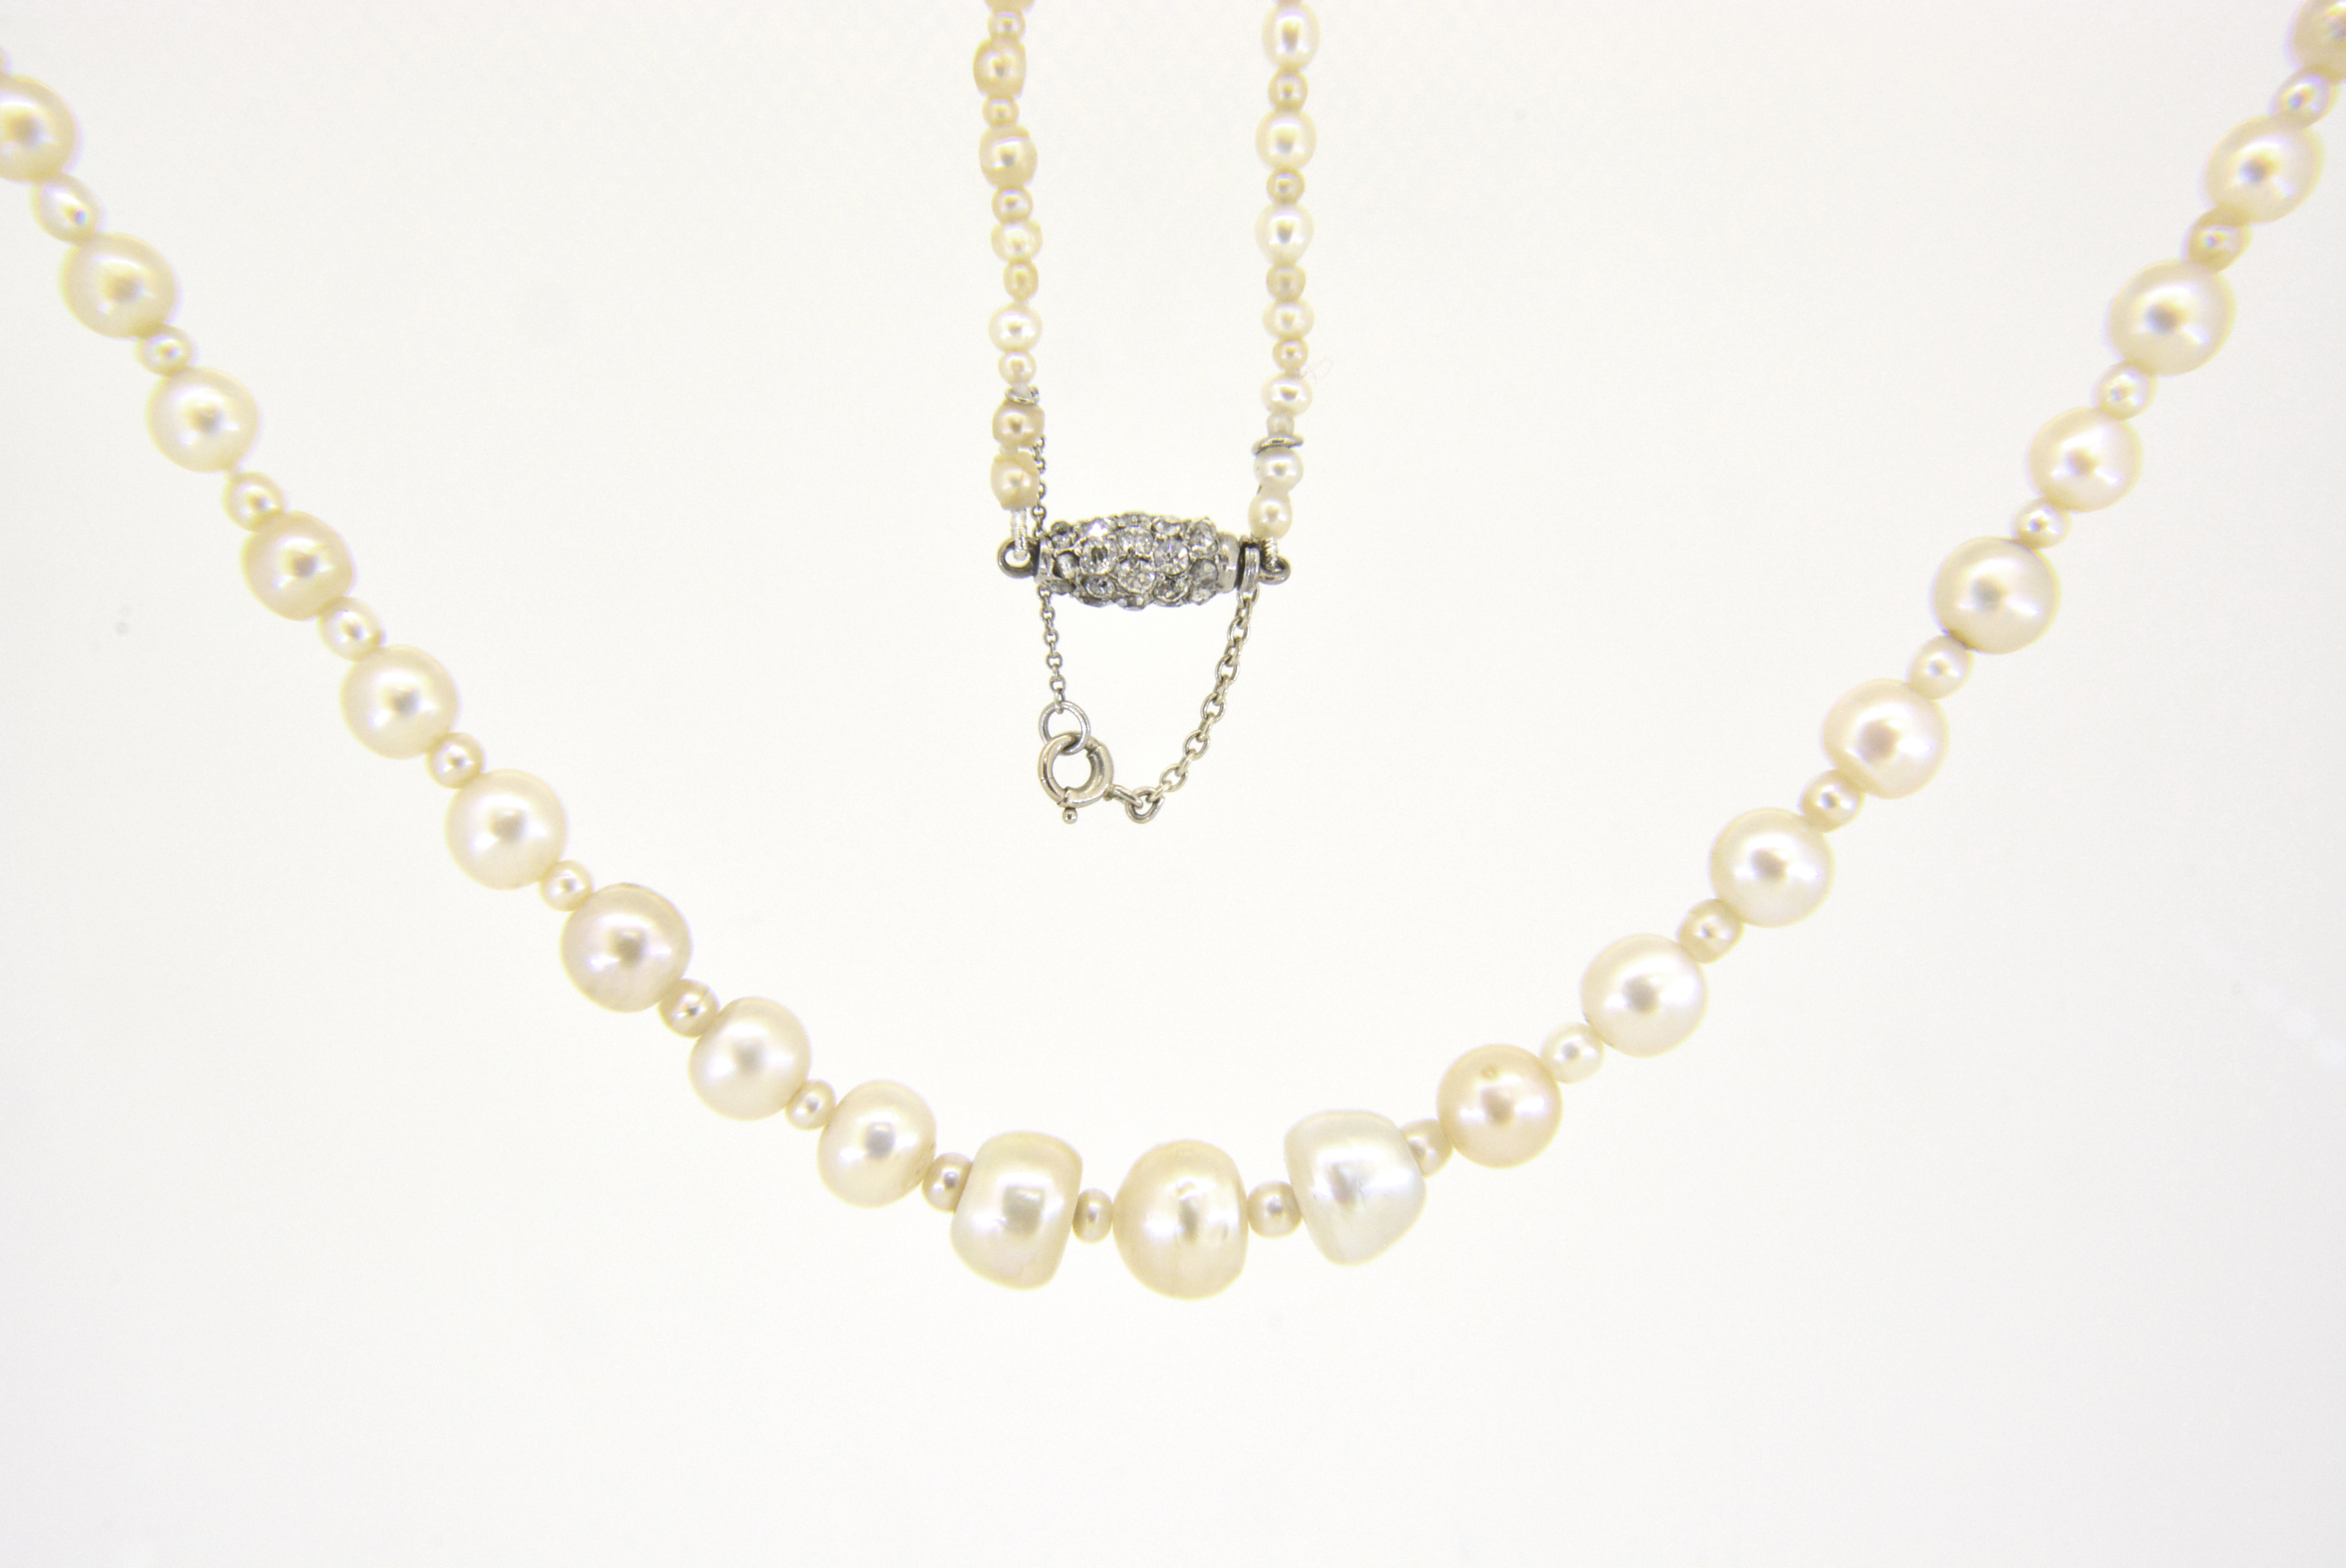 rhapsody pendant gold product mikimoto details white natural and necklace diamond pearl jewellery